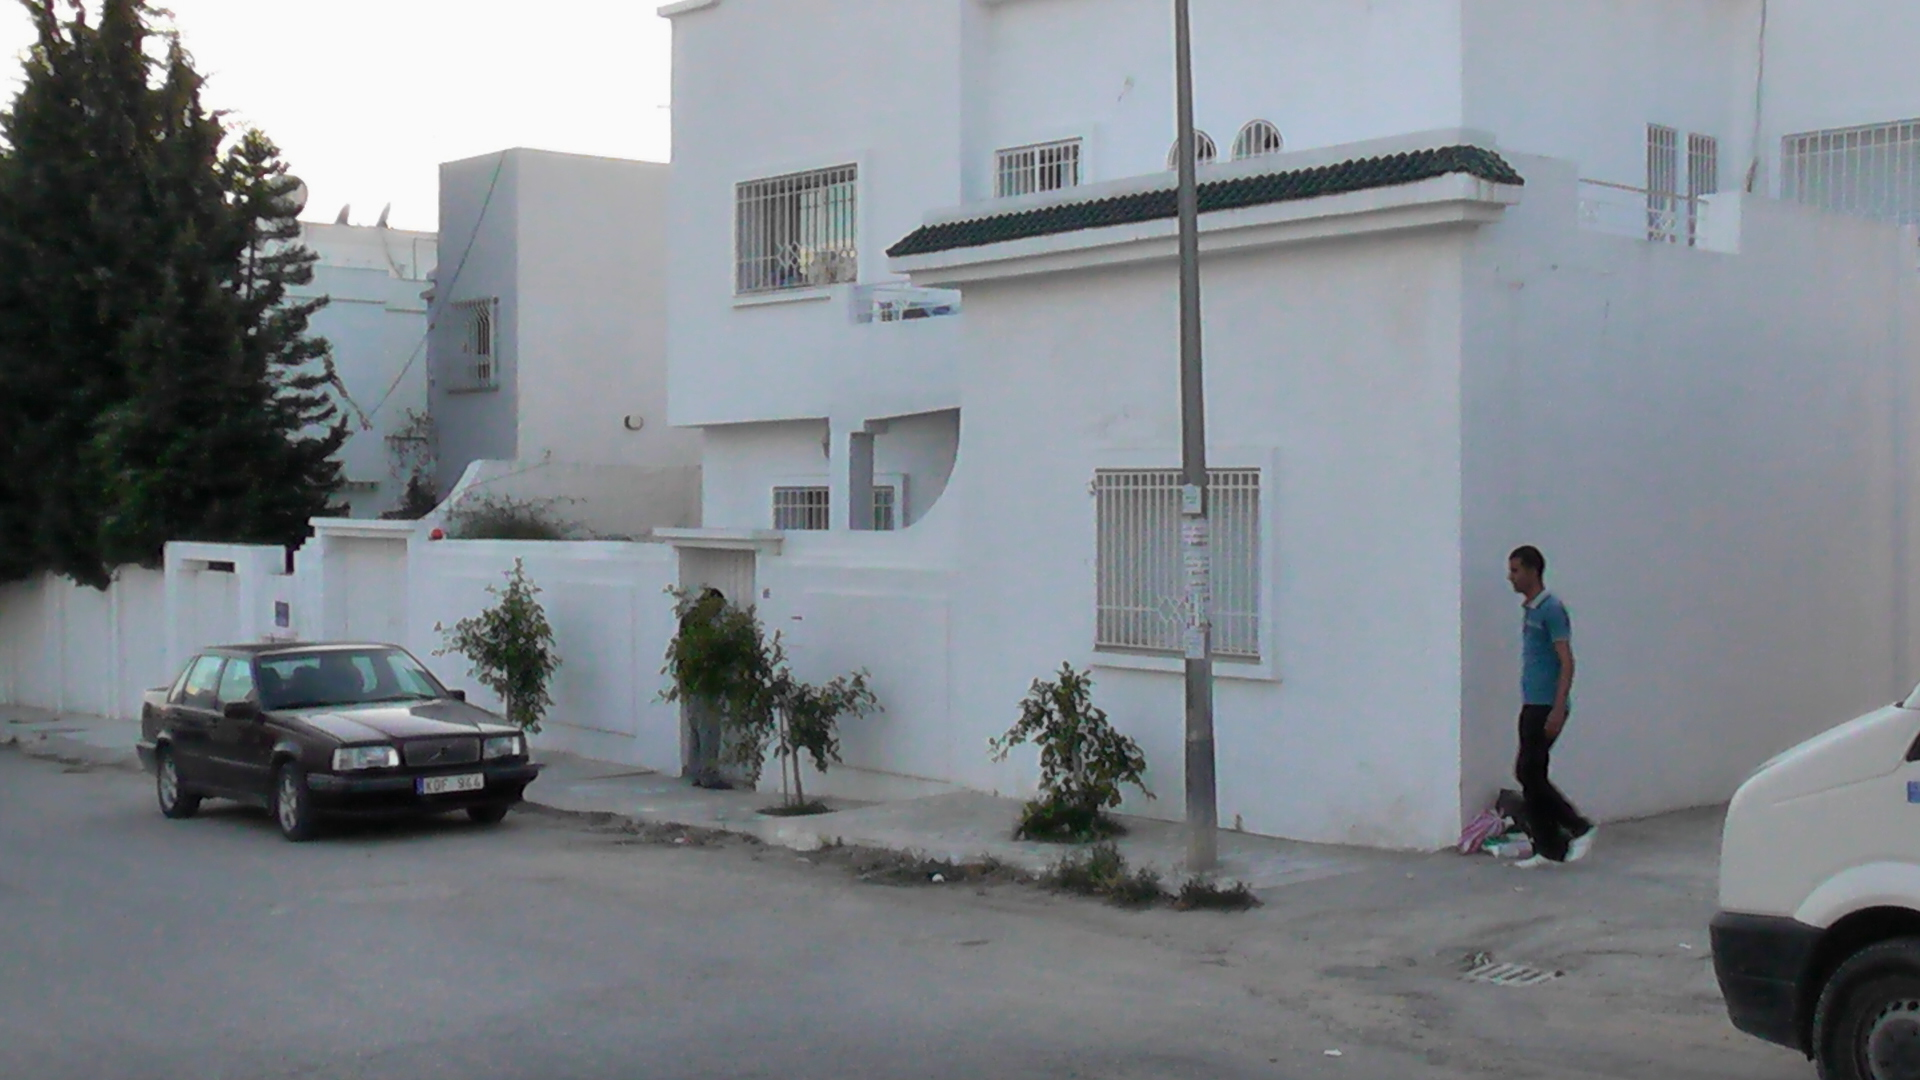 Tunis vente achat location appartement terrain maison for Achat maison en tunisie